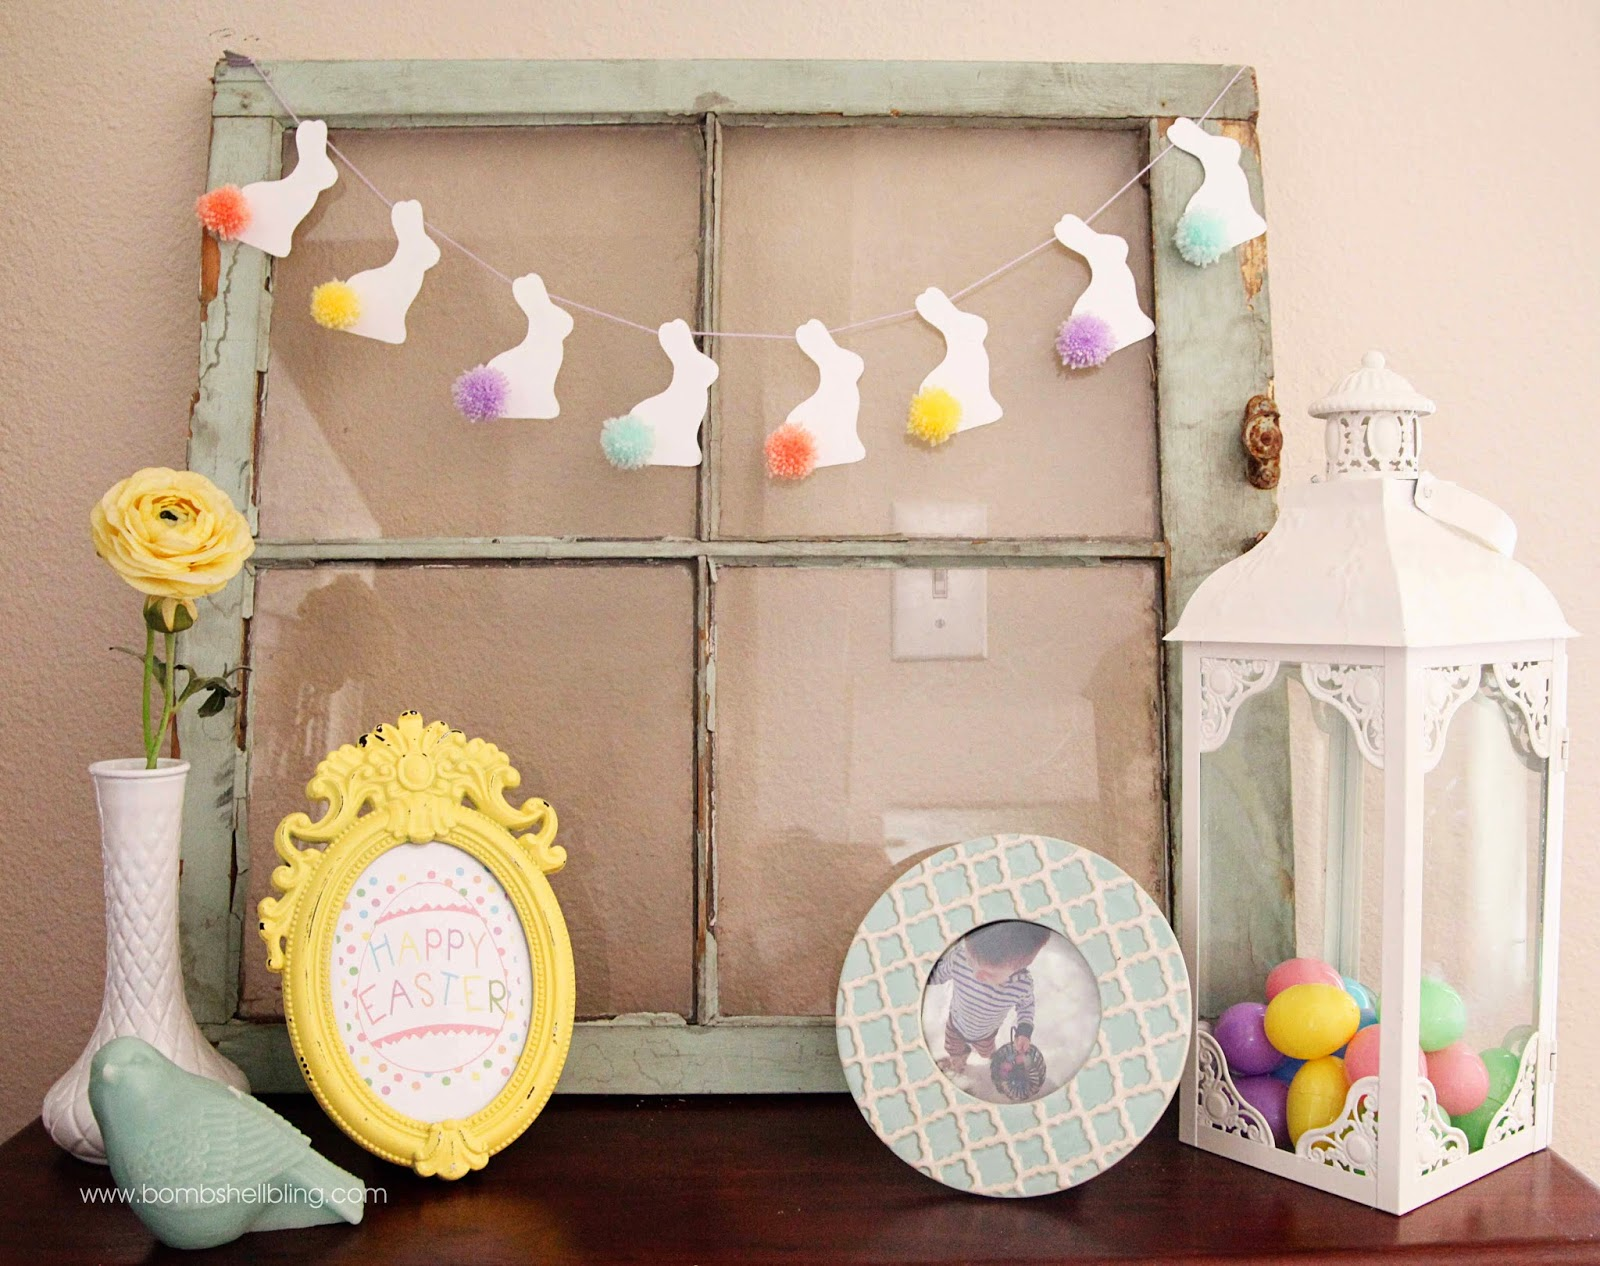 Make a darling pom pom bunny tail bunting for your Easter mantel! Sweet, unique decor to brighten your home during this Easter season.